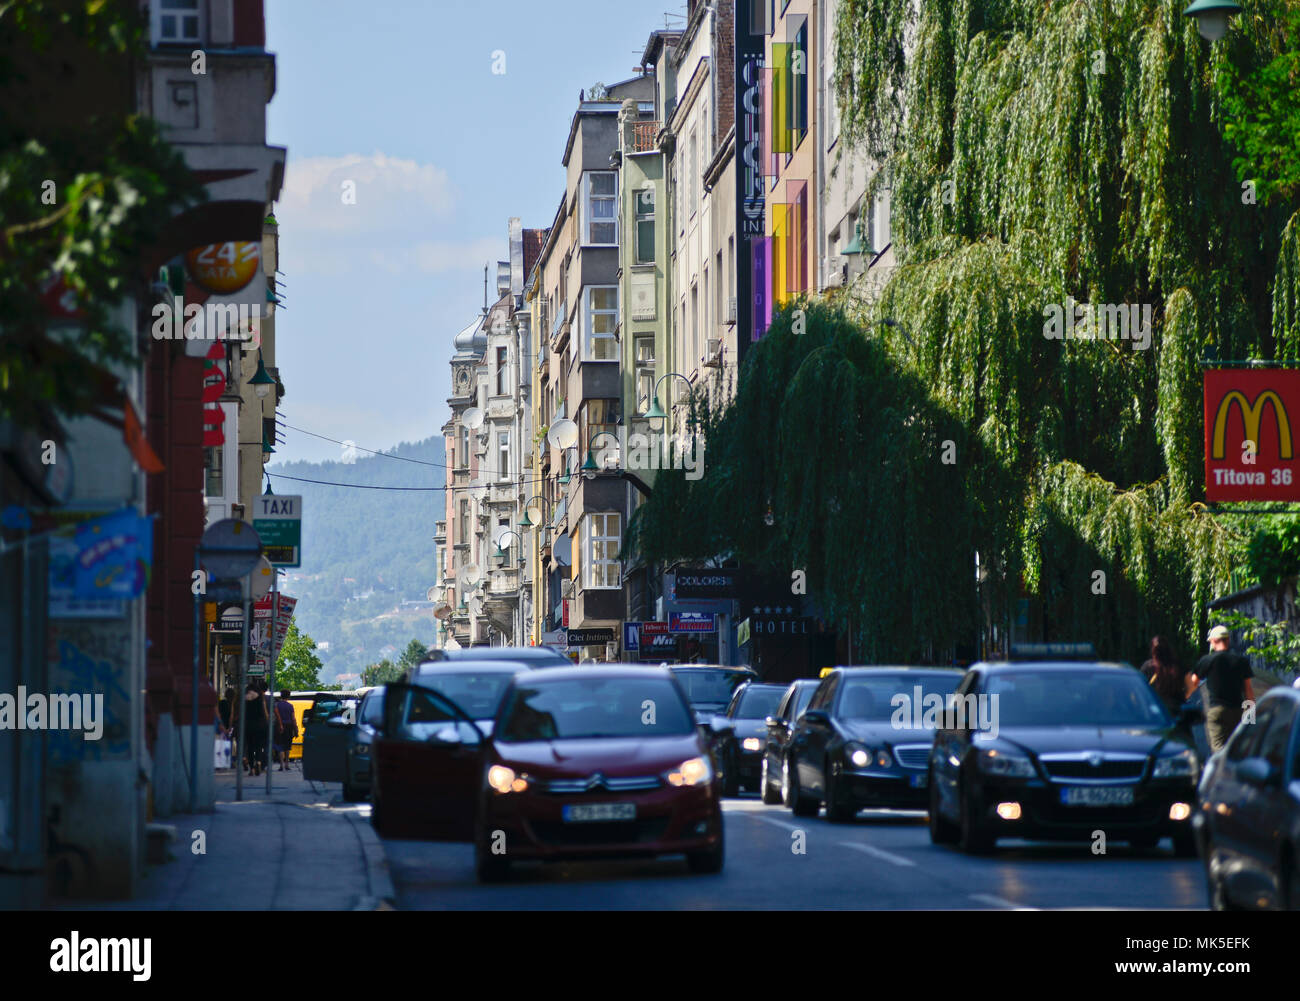 Traffic in Sarajevo, Bosnia - Stock Image